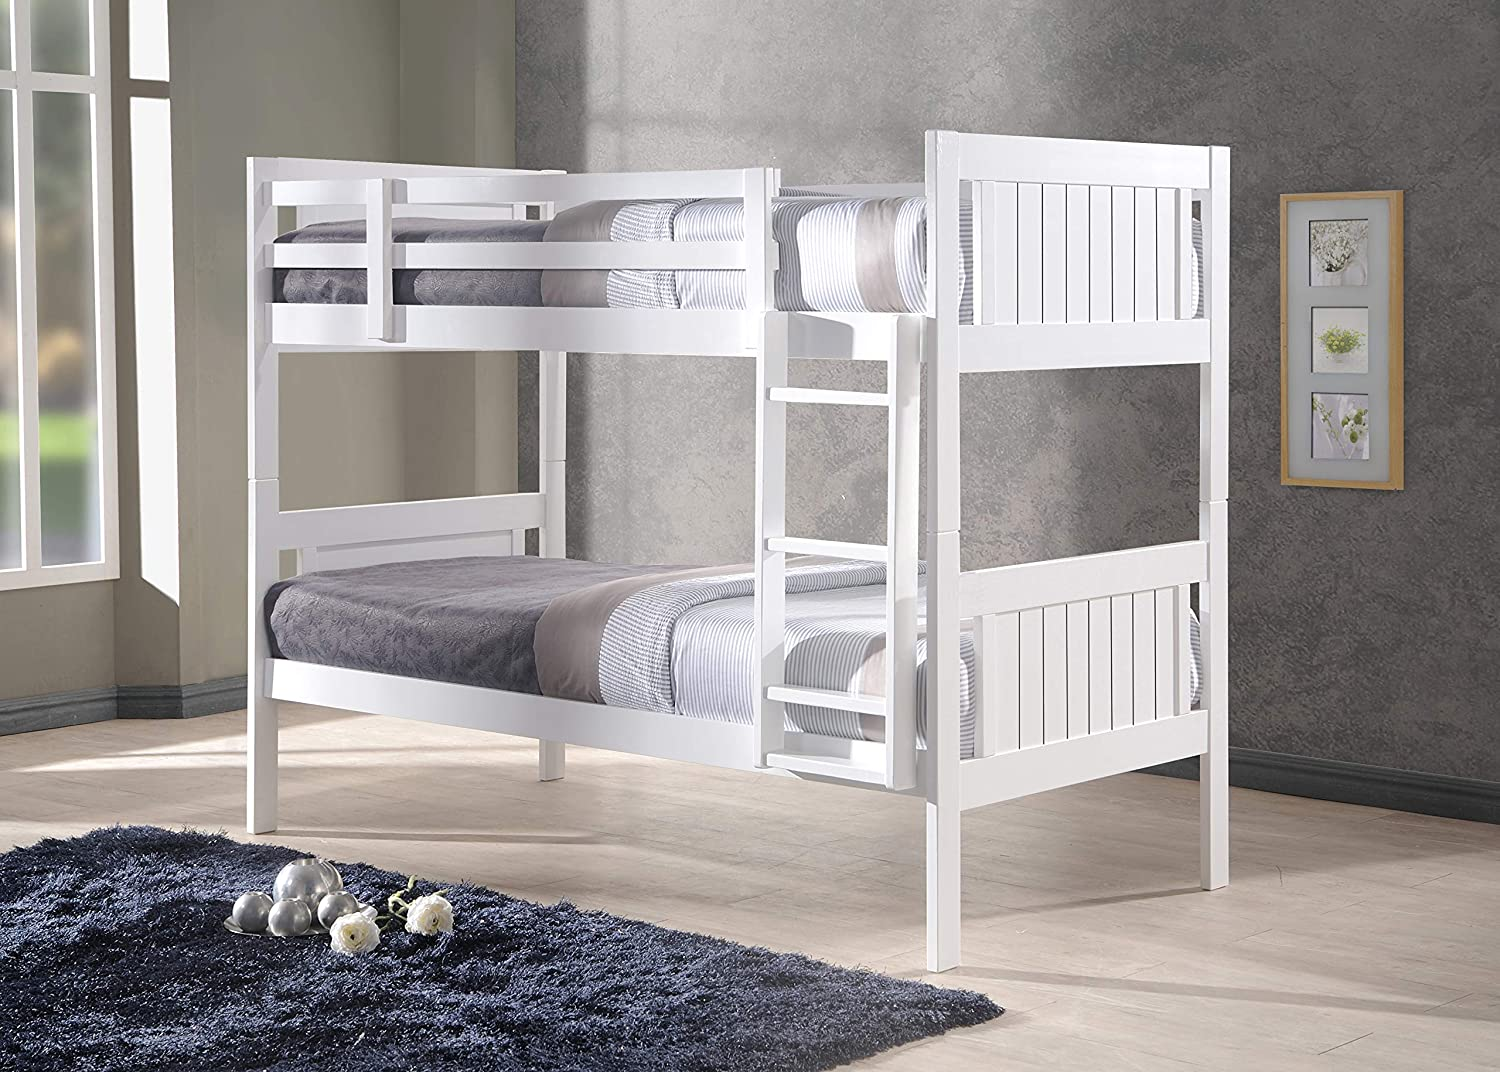 New Milan Wooden Kids Bunk Bed White Shaker Style Modern Childrens 3ft Single Bed Frame Bedroom Furniture Amazon Co Uk Kitchen Home